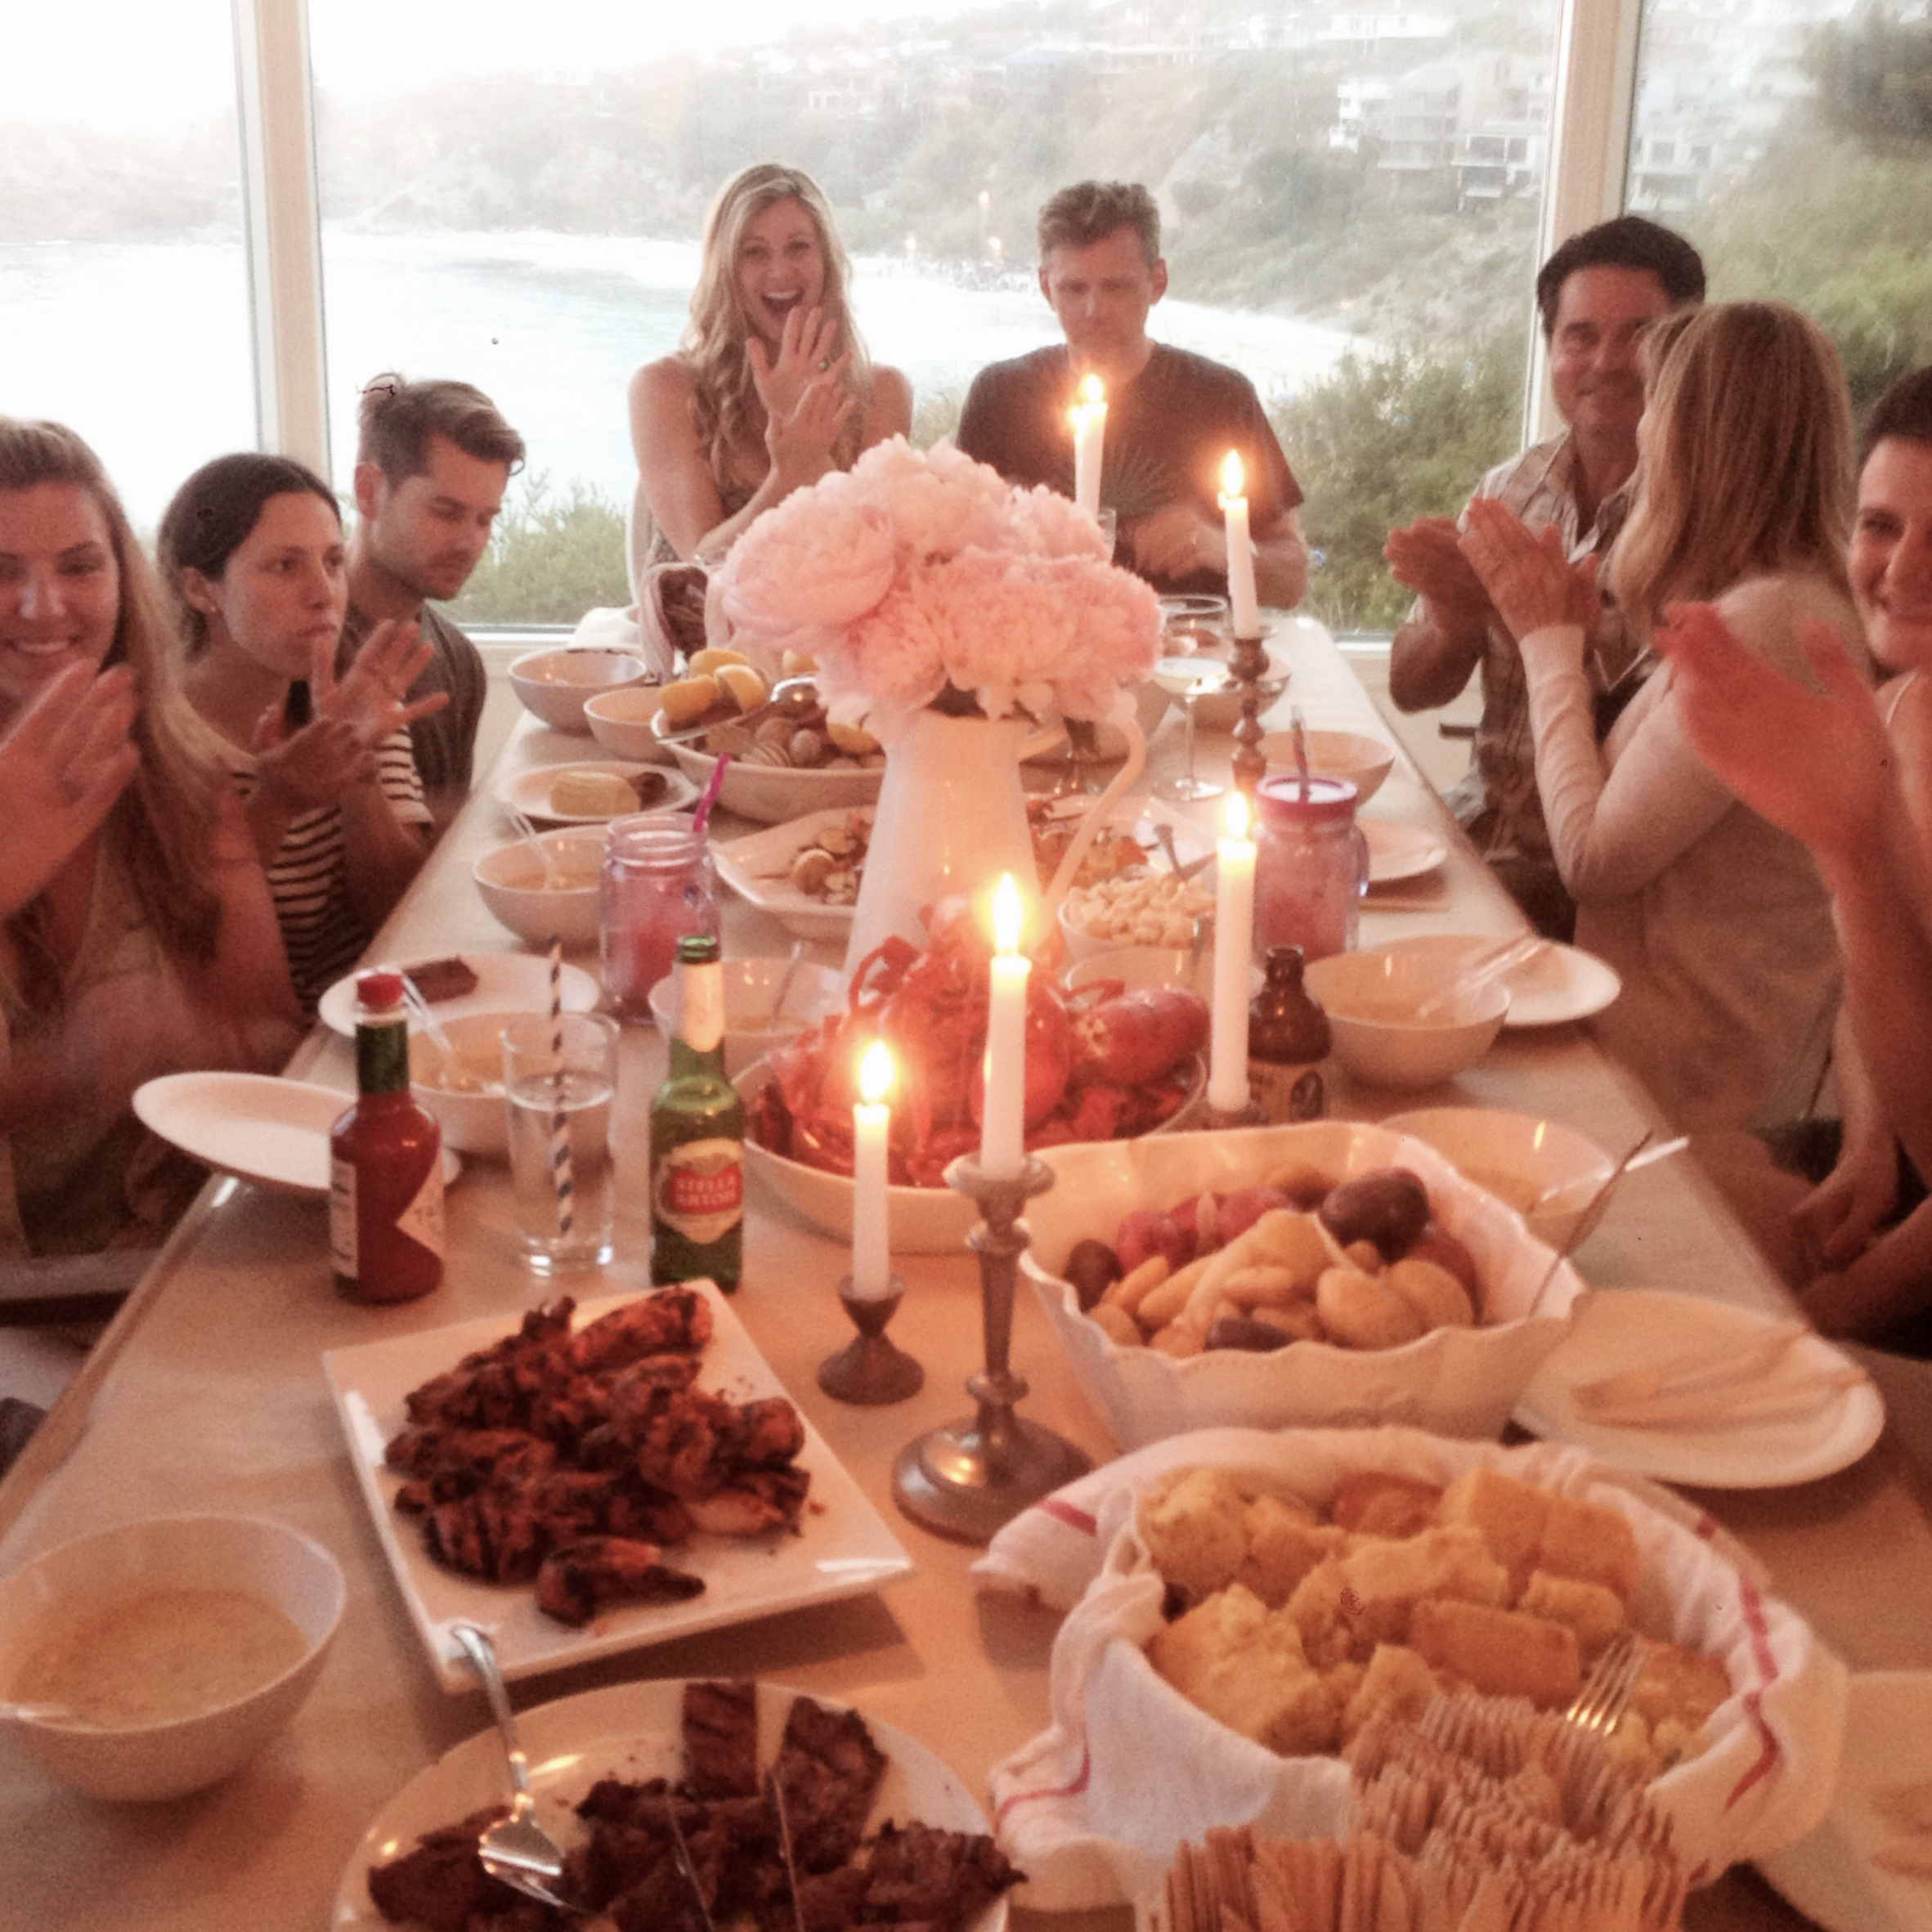 Lauren Conrad's Dinner Party